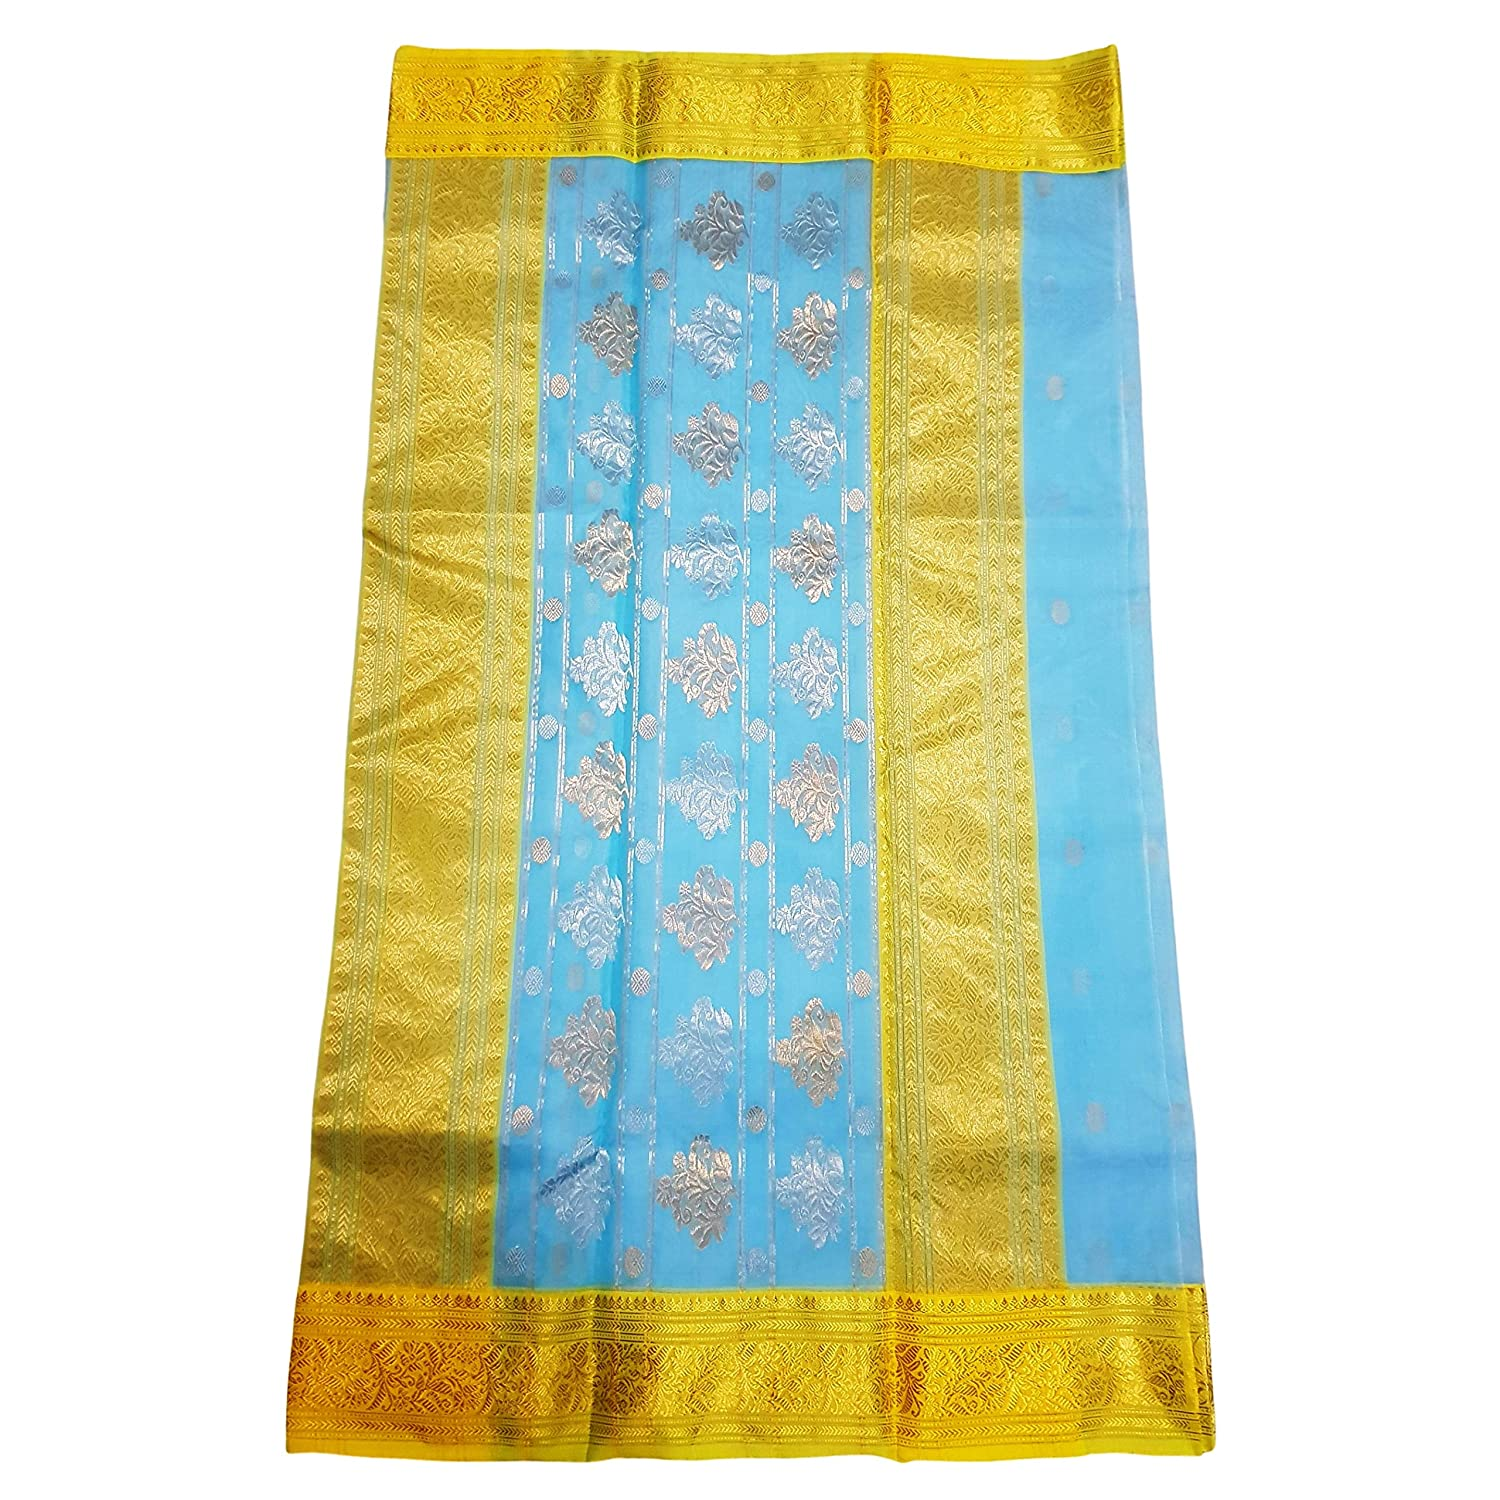 Chanderi Handwoven Tissue Silk Saree